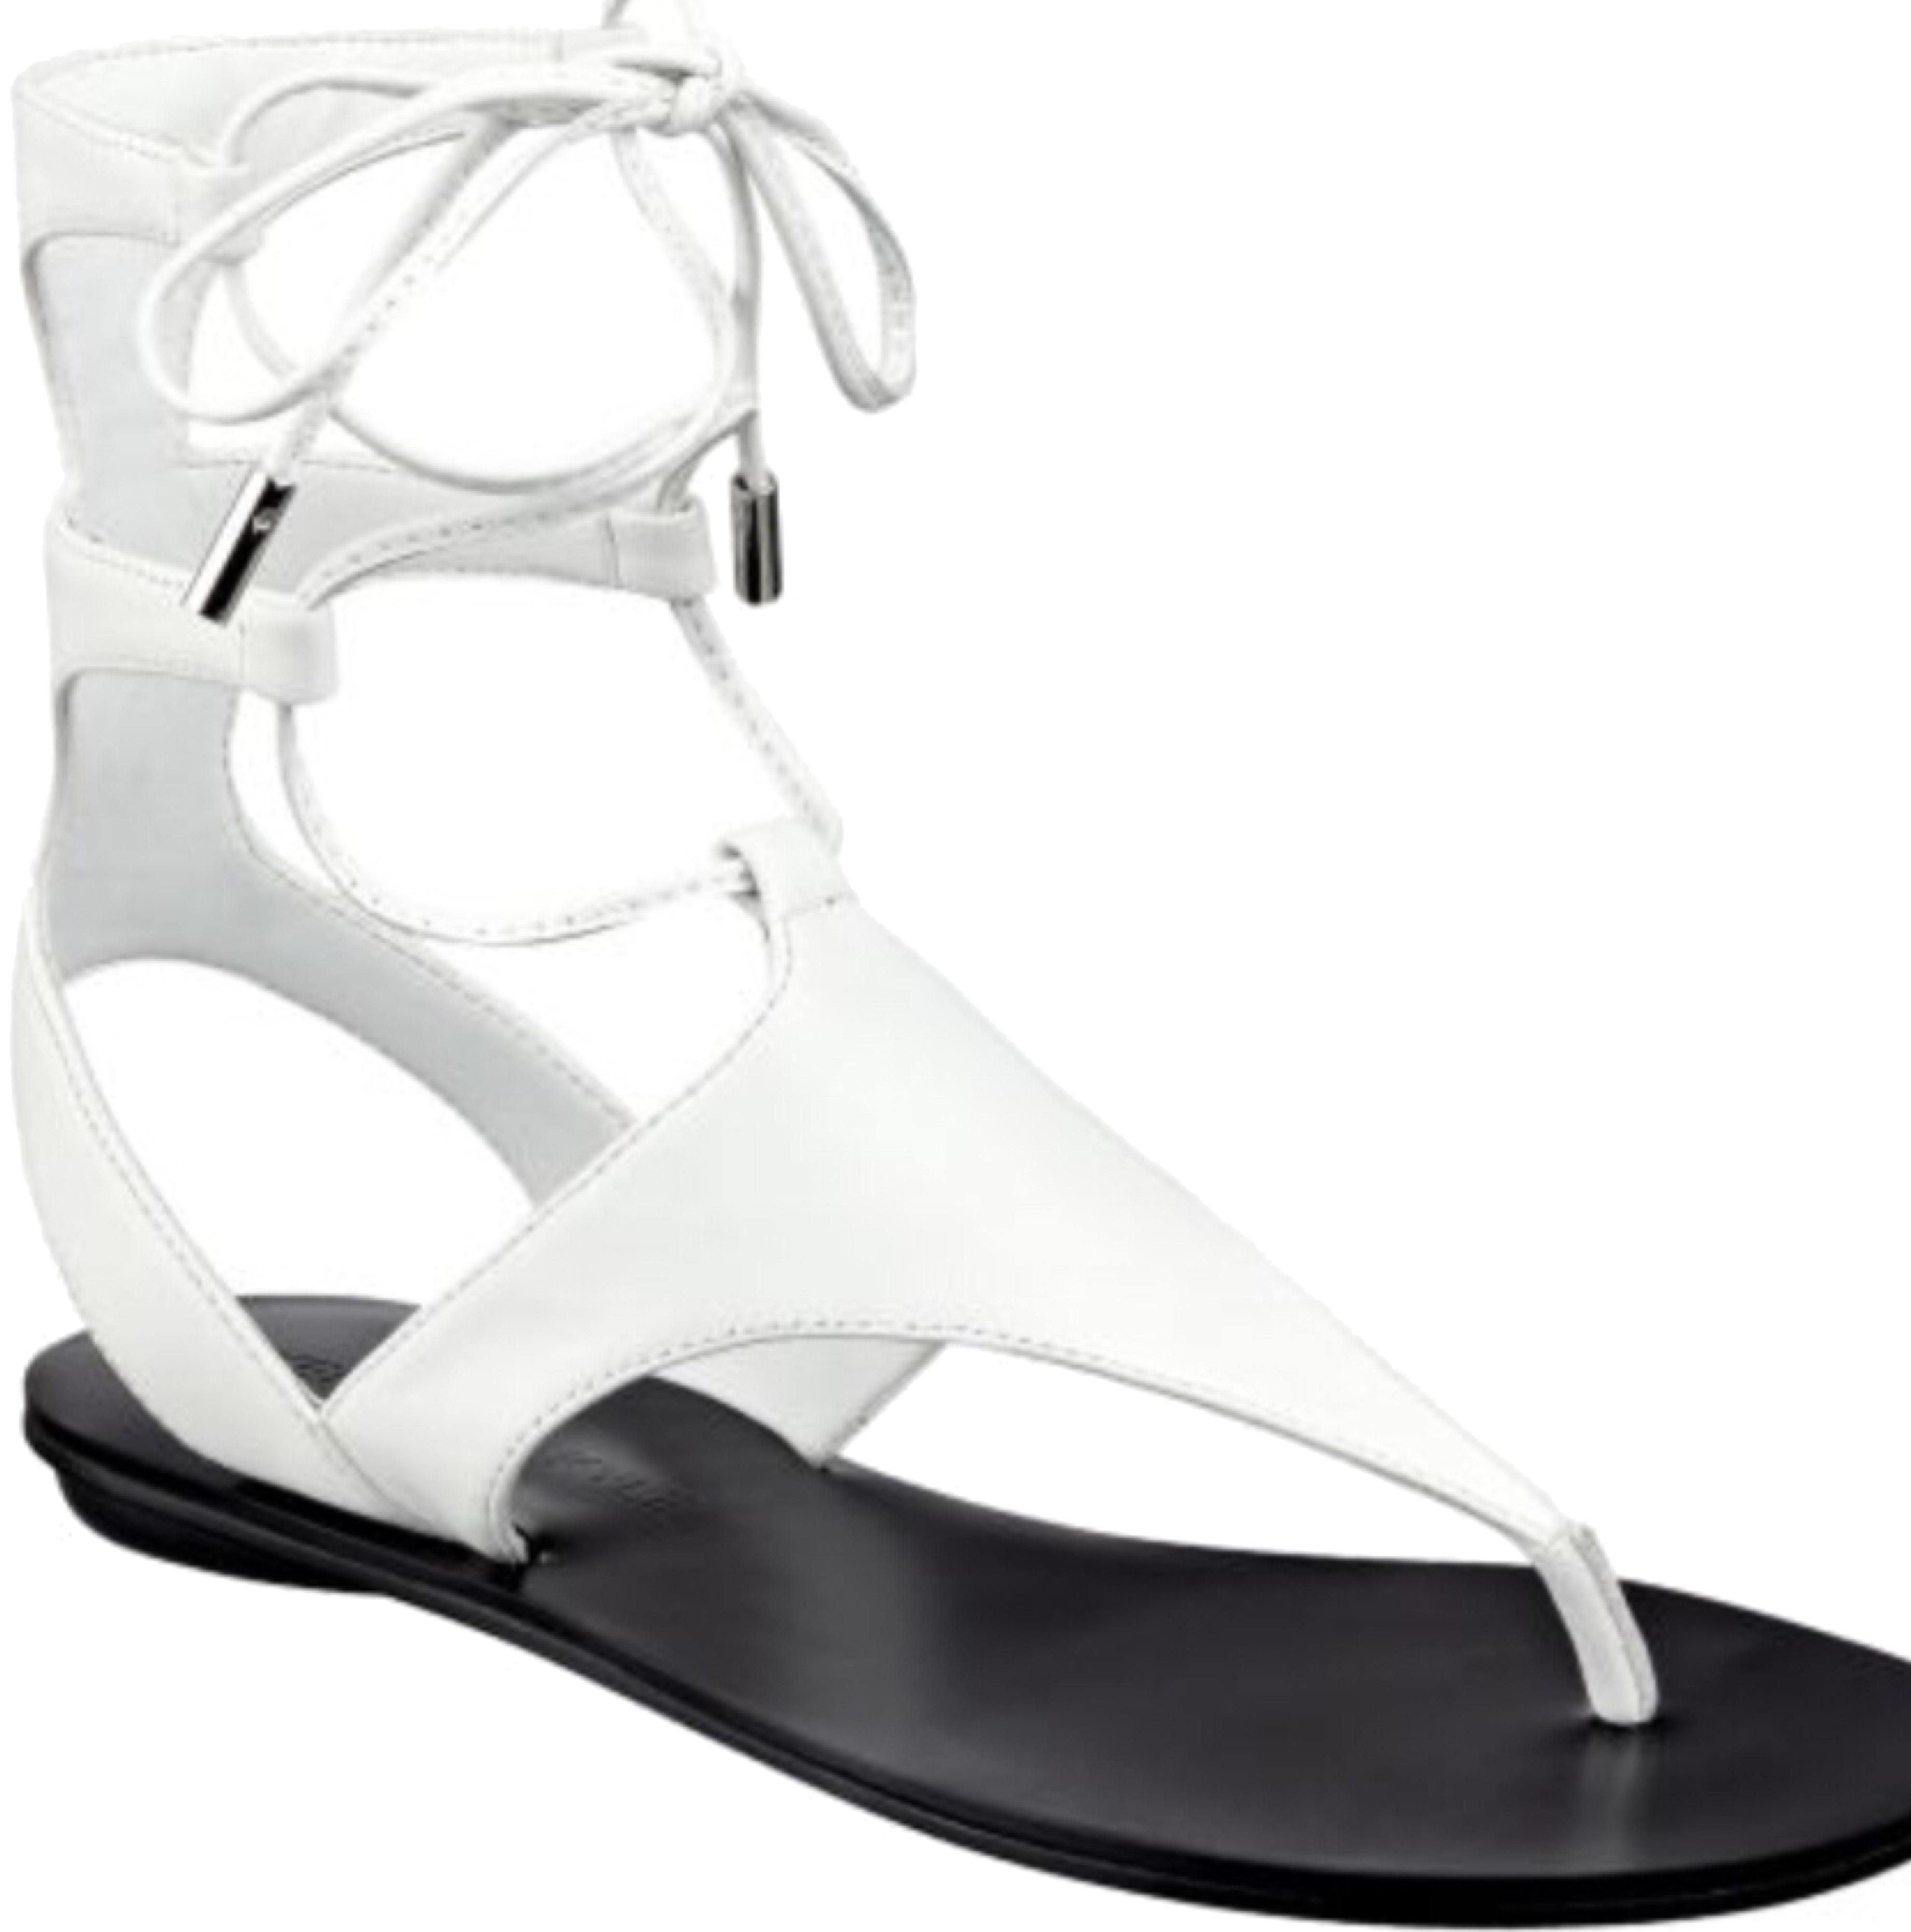 53dd54885f0 Kendall + Kylie Kylie Kylie White Faris Sandals Size US 7 Regular (M ...